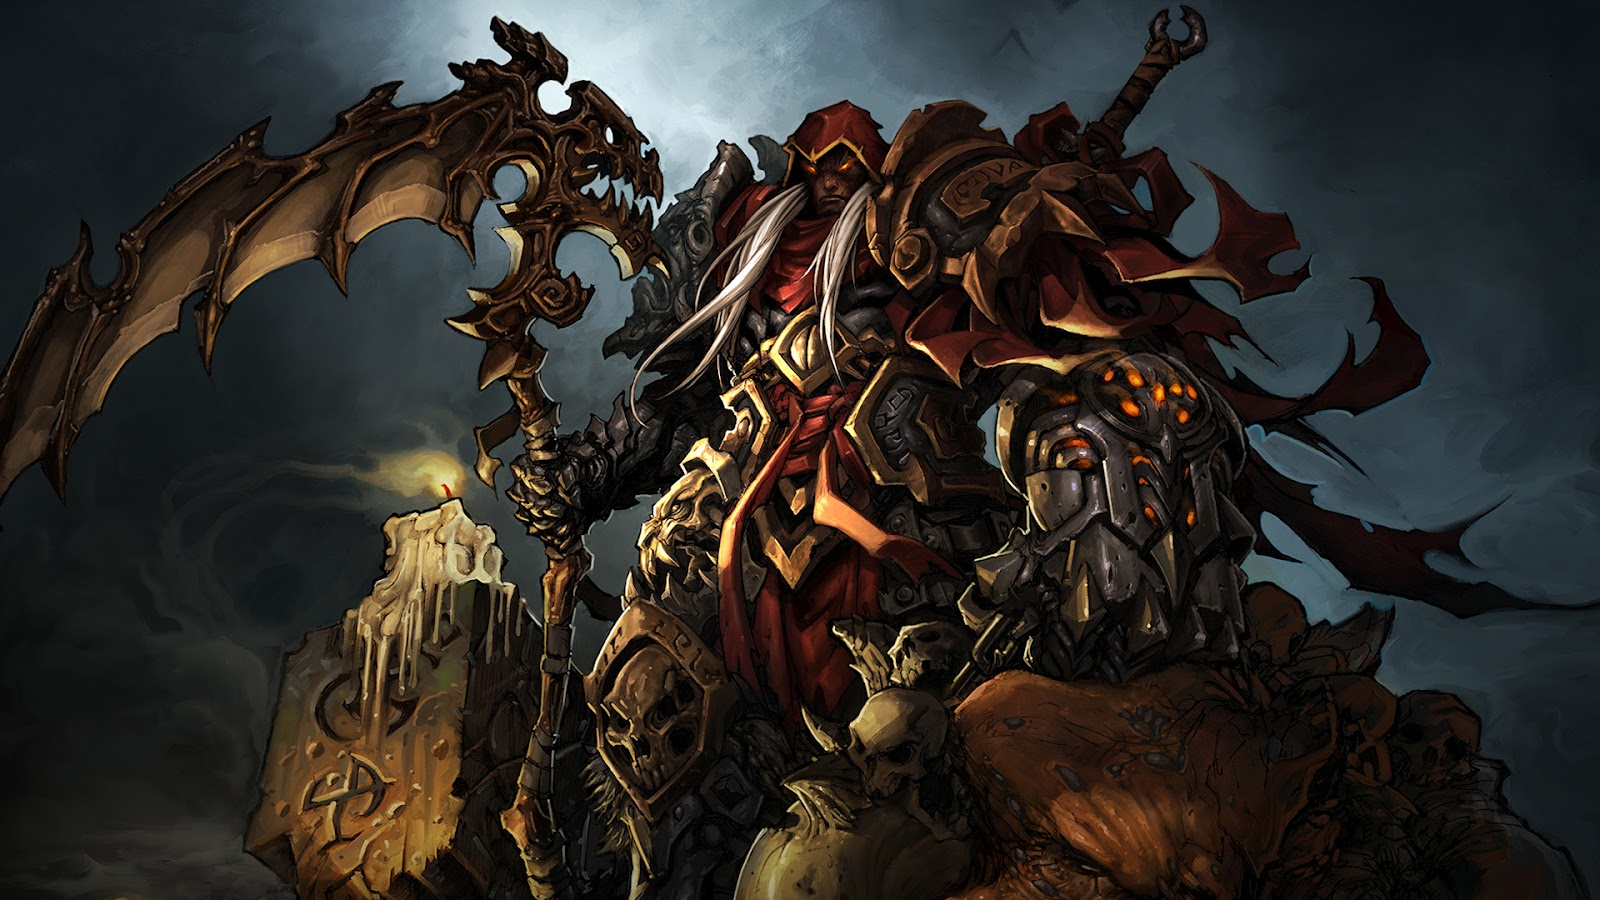 http://1.bp.blogspot.com/-mRBKXrj8ld0/UCpCpY6VjWI/AAAAAAAAAl4/fjzxMbQ_NbU/s1600/Darksiders-Wrath-Of-War-Wallpaper.bmp